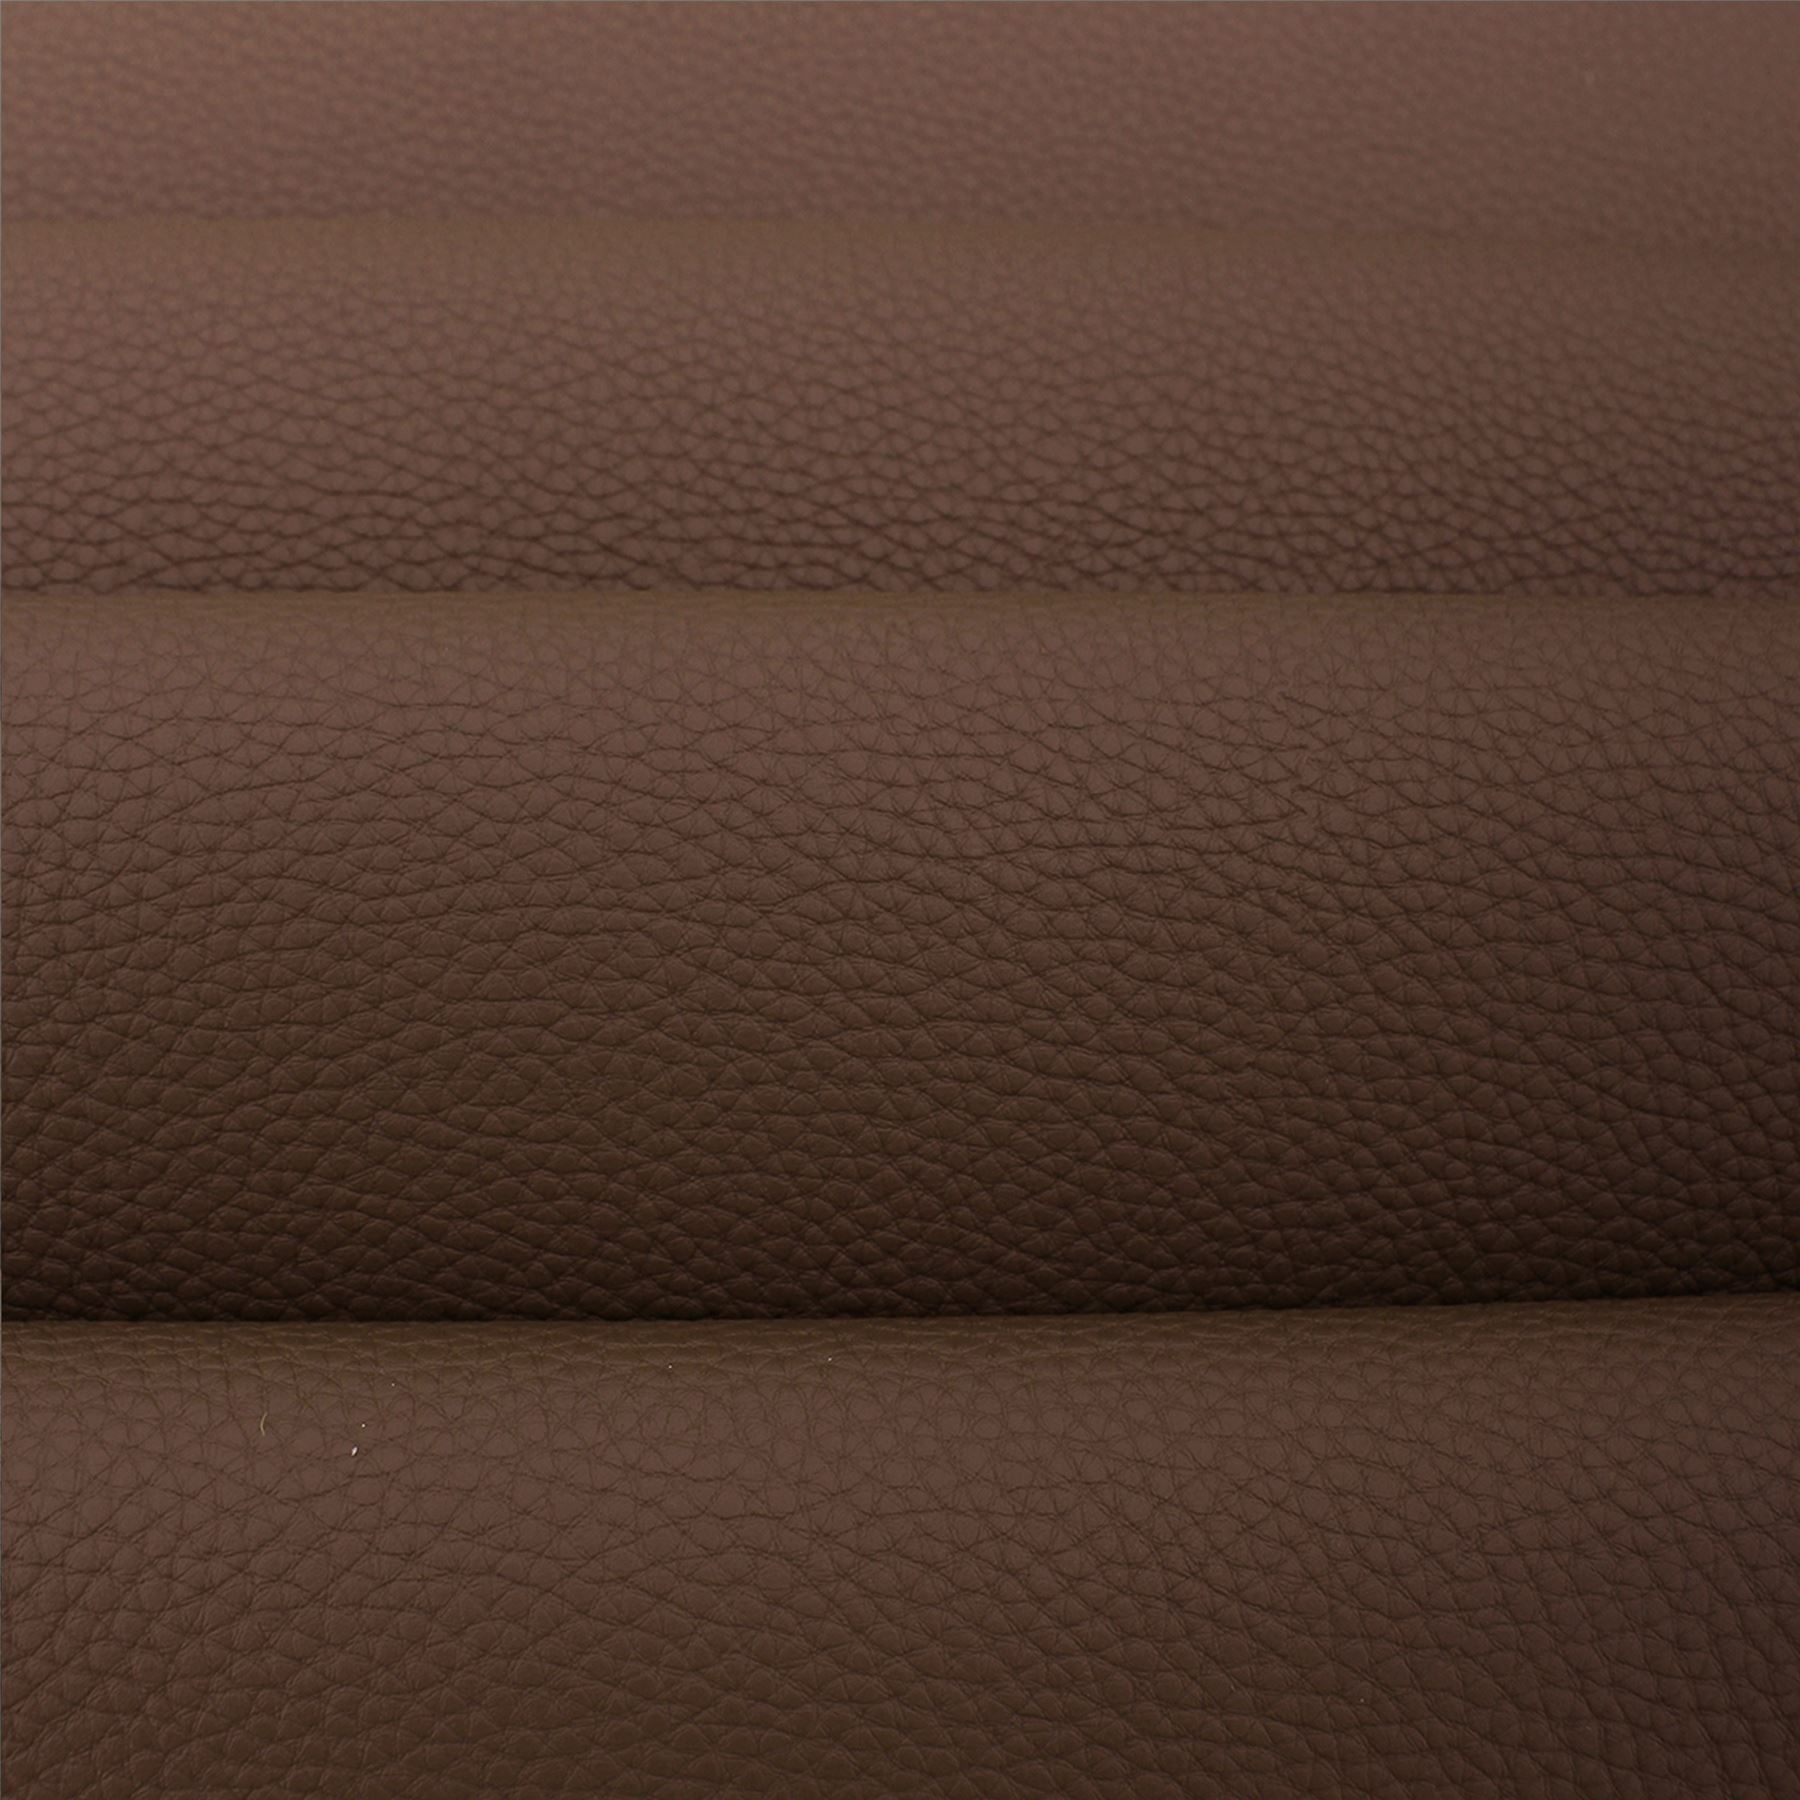 Nova-Faux-Leatherette-Artificial-Leather-Heavy-Grain-Upholstery-Vehicle-Fabric thumbnail 23